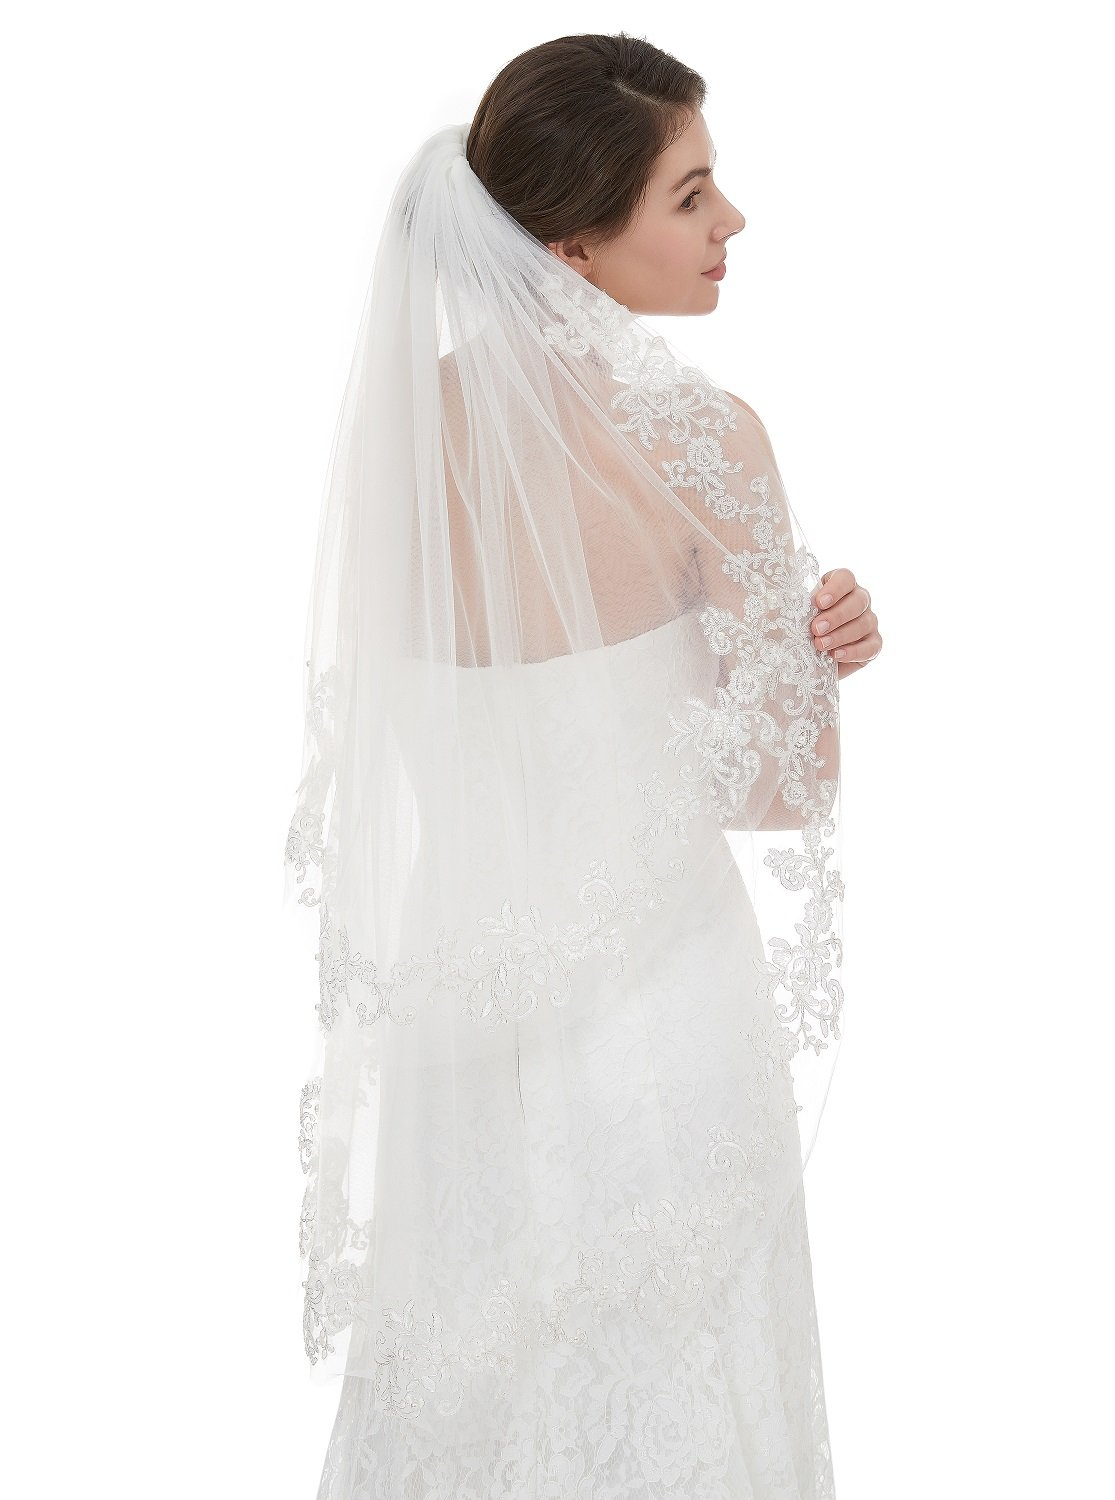 EllieHouse Women's Short 2 Tier Lace Ivory Wedding Bridal Veil With Comb L37IV